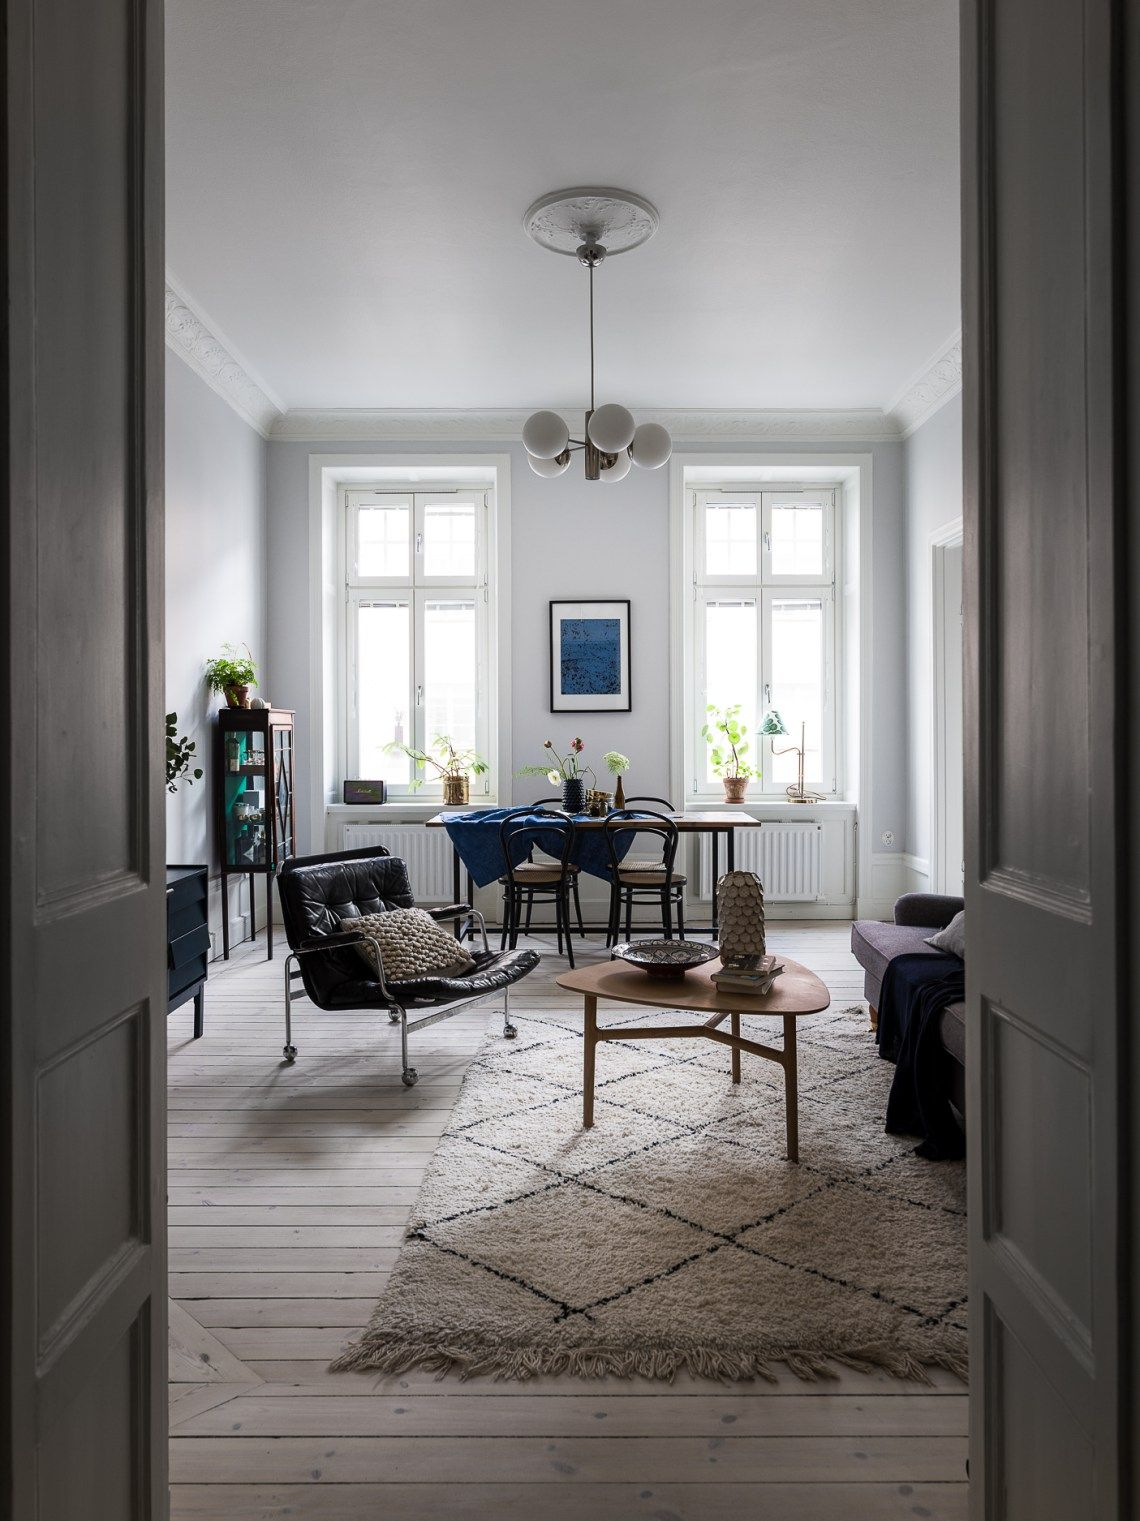 Cozy home with blue accents - via Coco Lapine Design blog